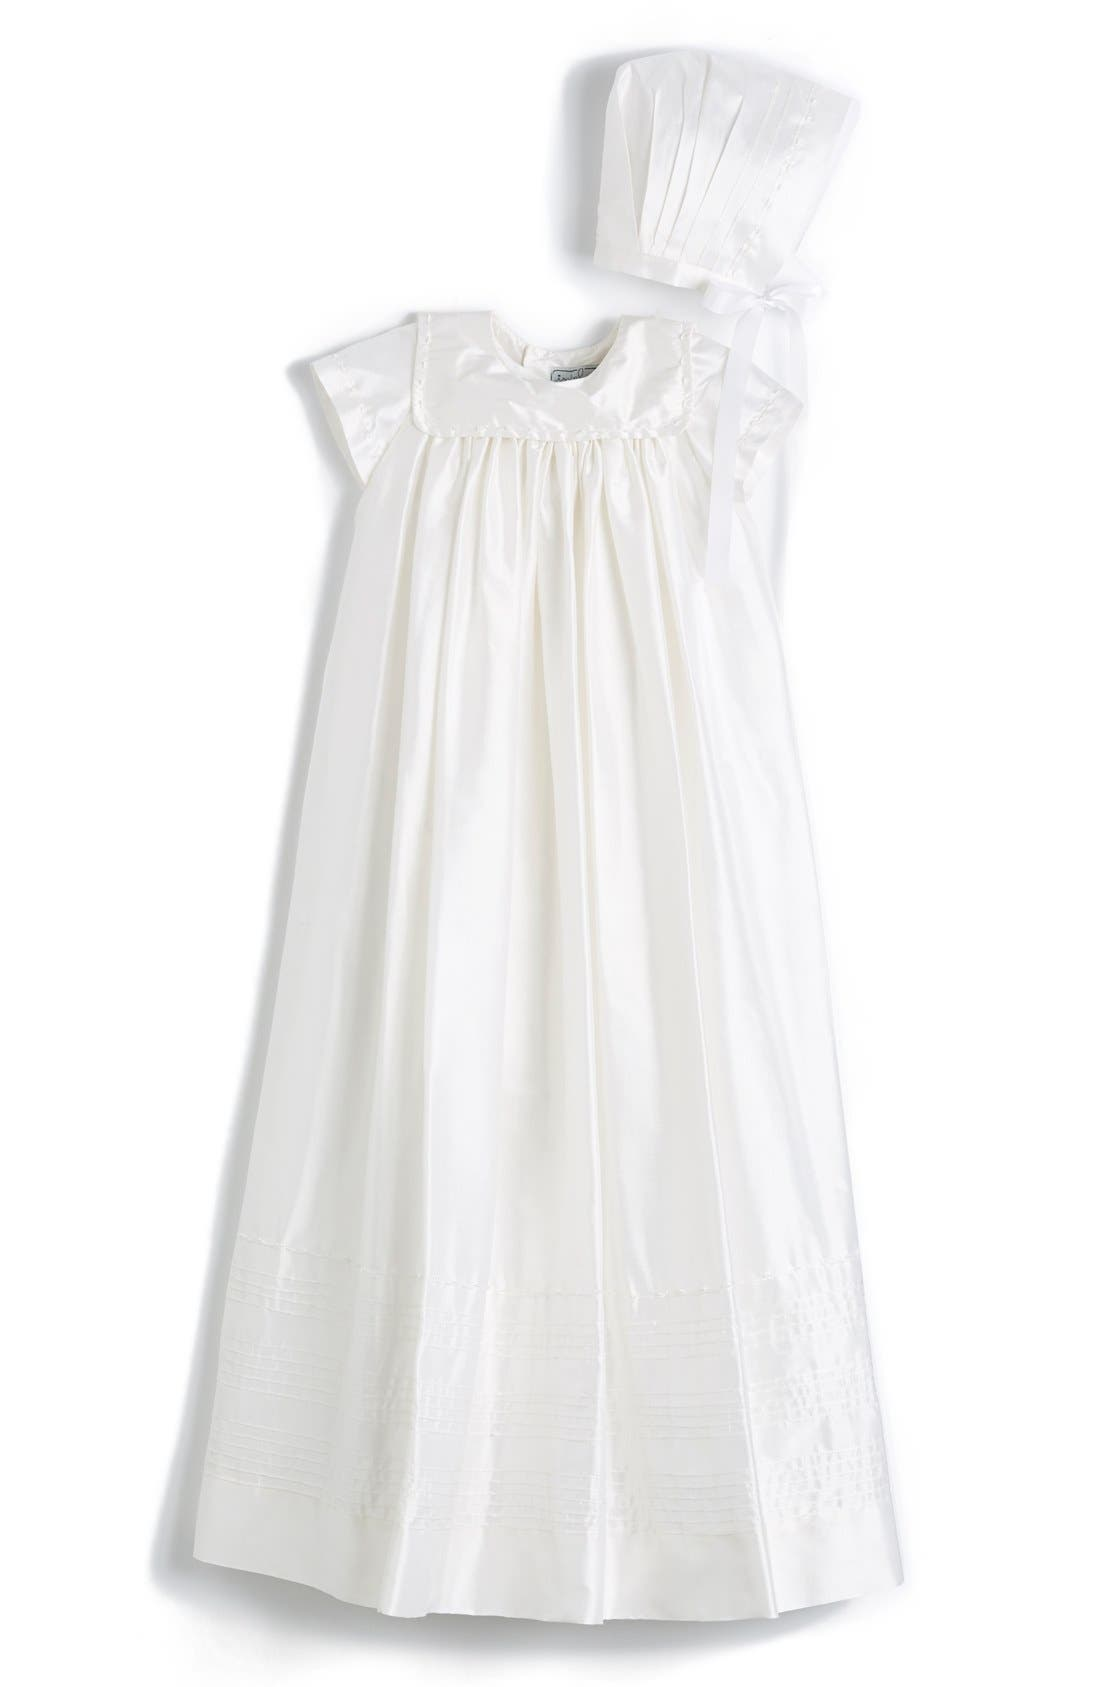 Alternate Image 1 Selected - Isabel Garreton 'Traditional' Silk Christening Gown & Bonnet (Baby)